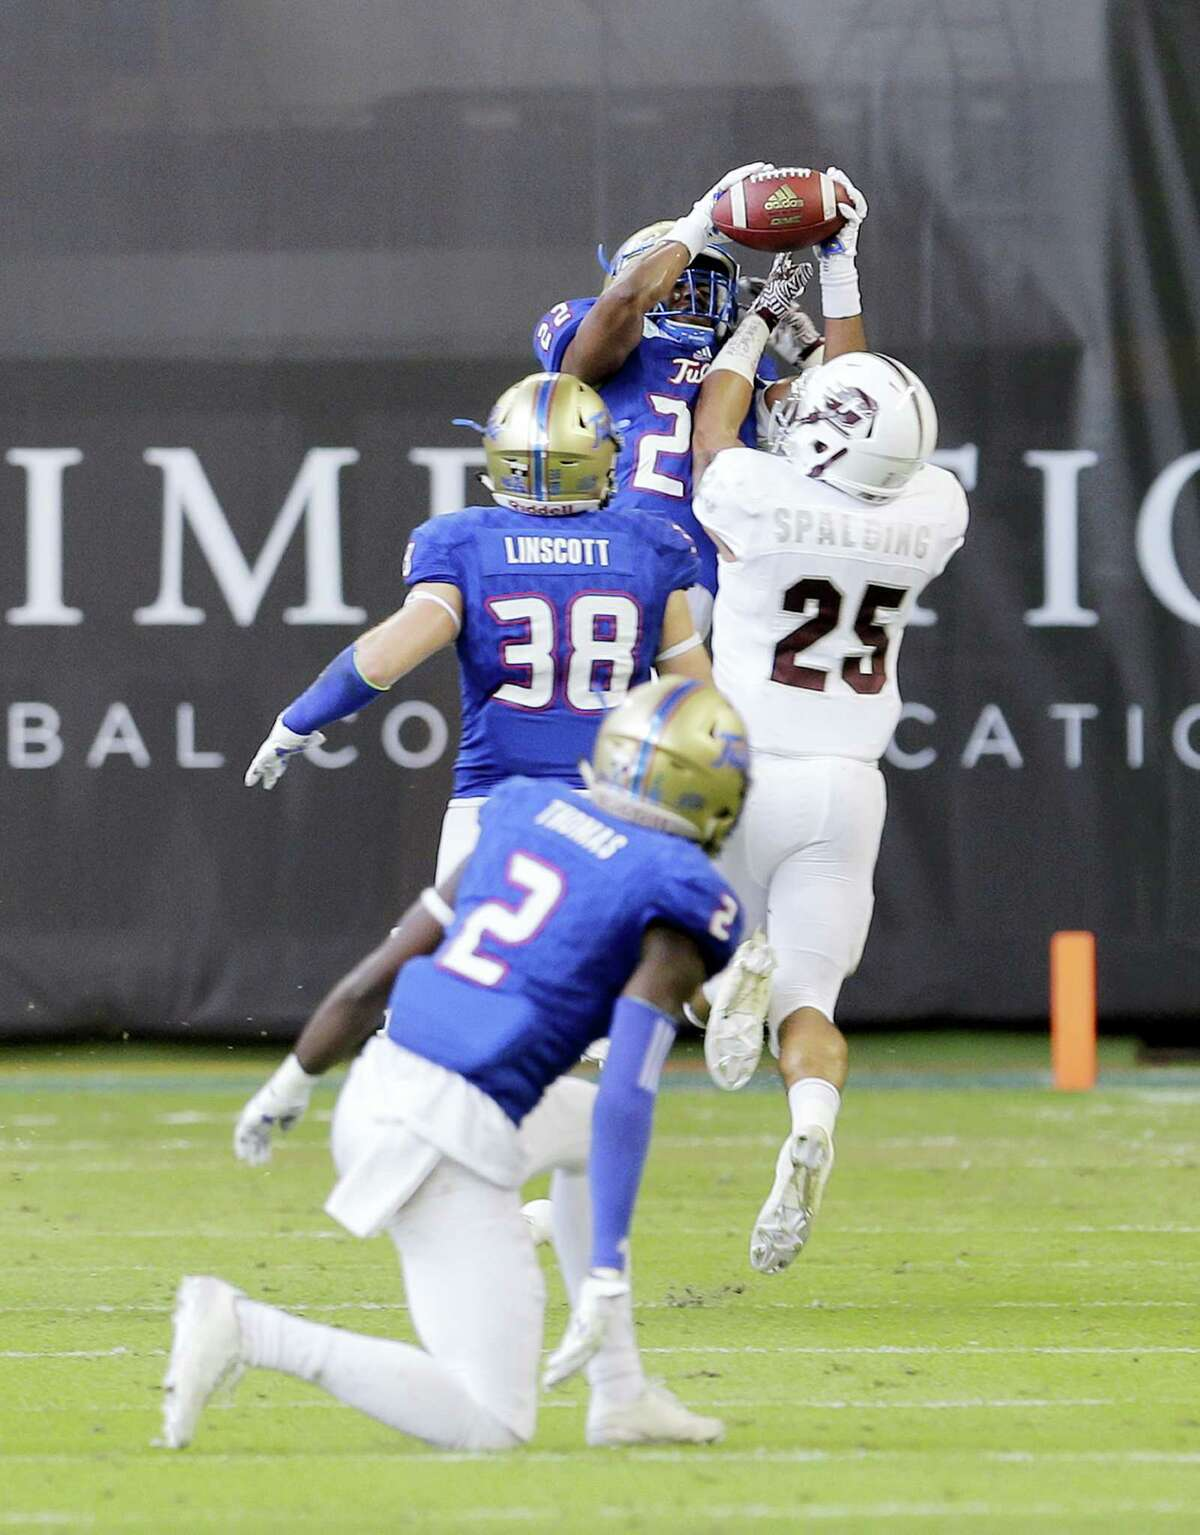 Tulsa safety Jeremy Brady (22) intercepts a pass intended for Central Michigan running back Devon Spalding (25) in the first half of the Miami Beach Bowl. Tulsa beat Central Michigan 55-10.